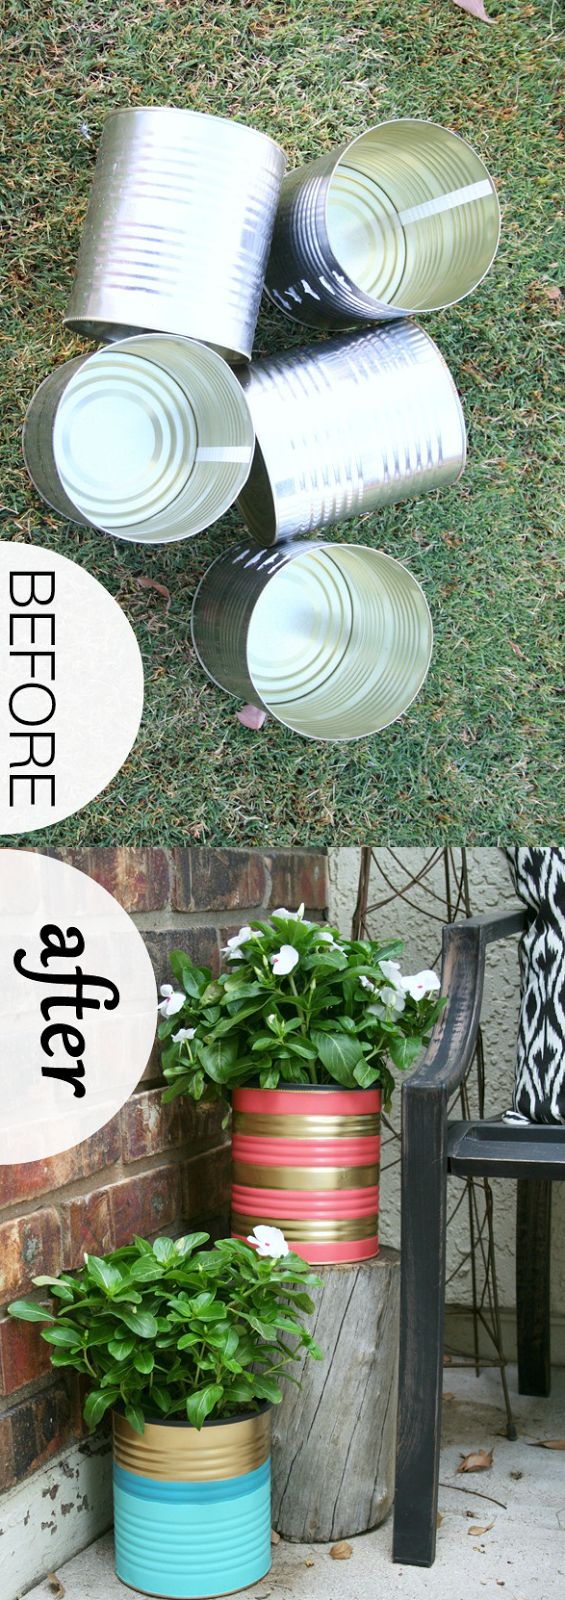 A Genius Way To Re-Use Empty Tin Cans